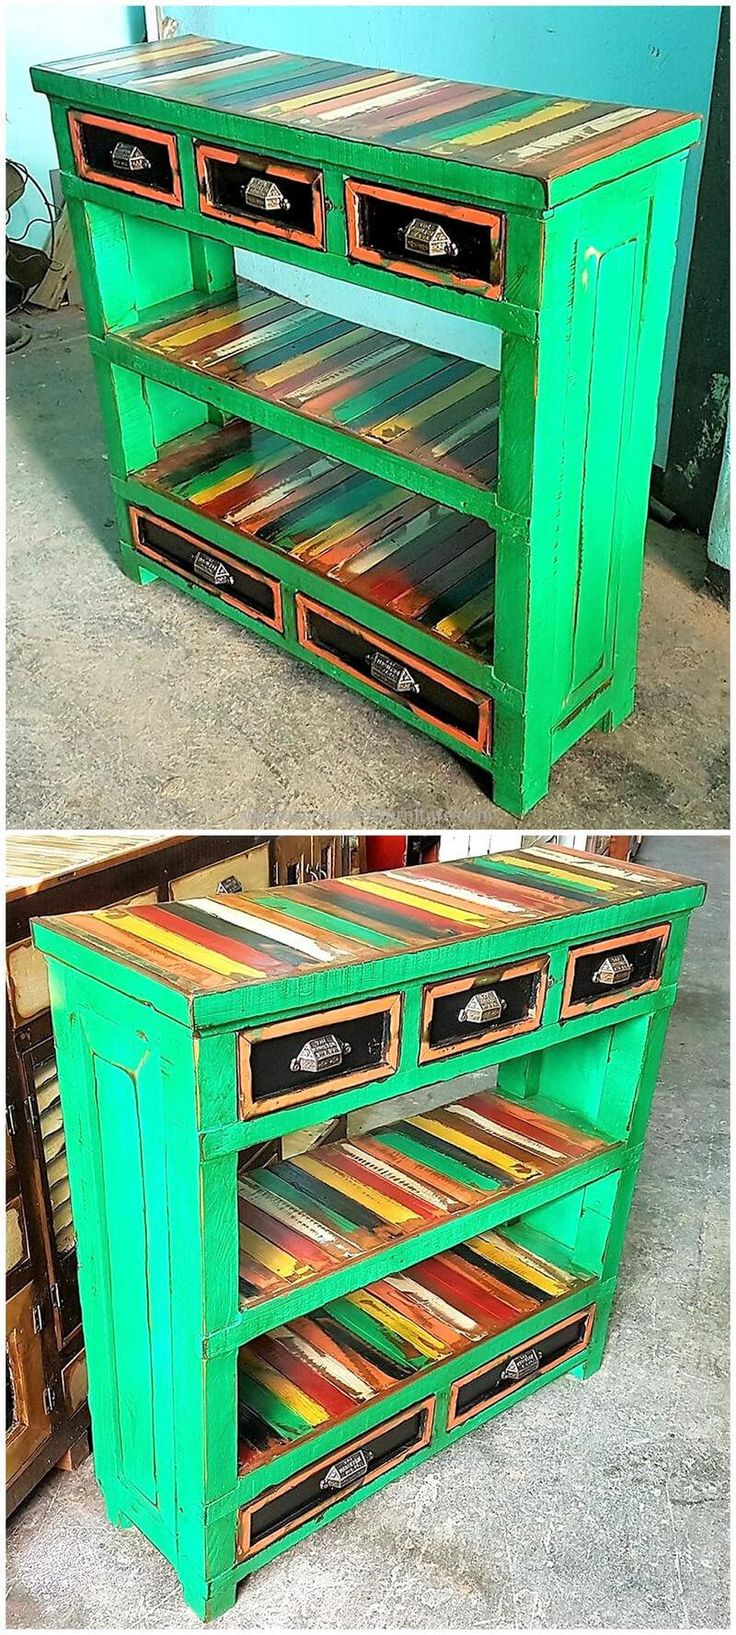 Now come to an idea which serves as decoration as well as allows place to store the items with the chances of missing. The shipping pallet entryway table is painted with funky colors to add grace to it and the handles are looking perfect on the drawers. The decorative items can be placed on the hollow space to adorn the area.